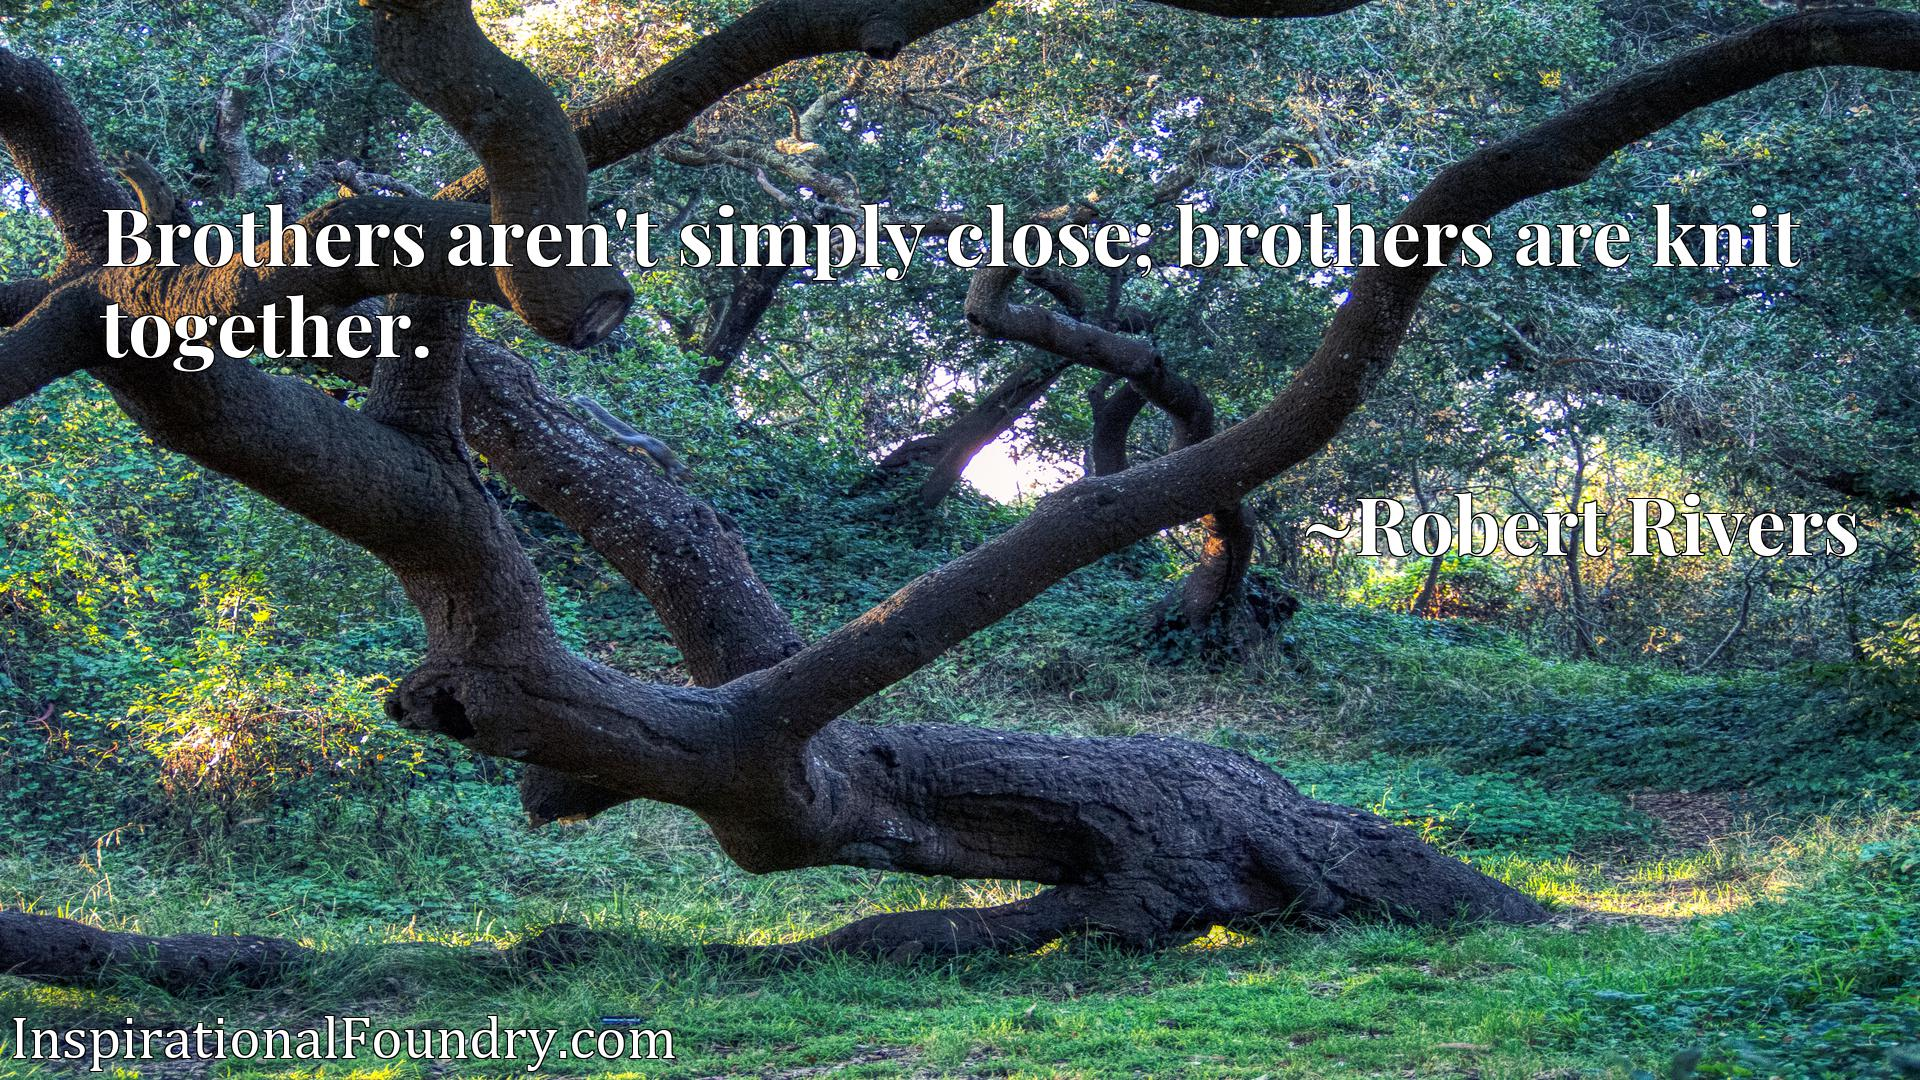 Brothers aren't simply close; brothers are knit together.